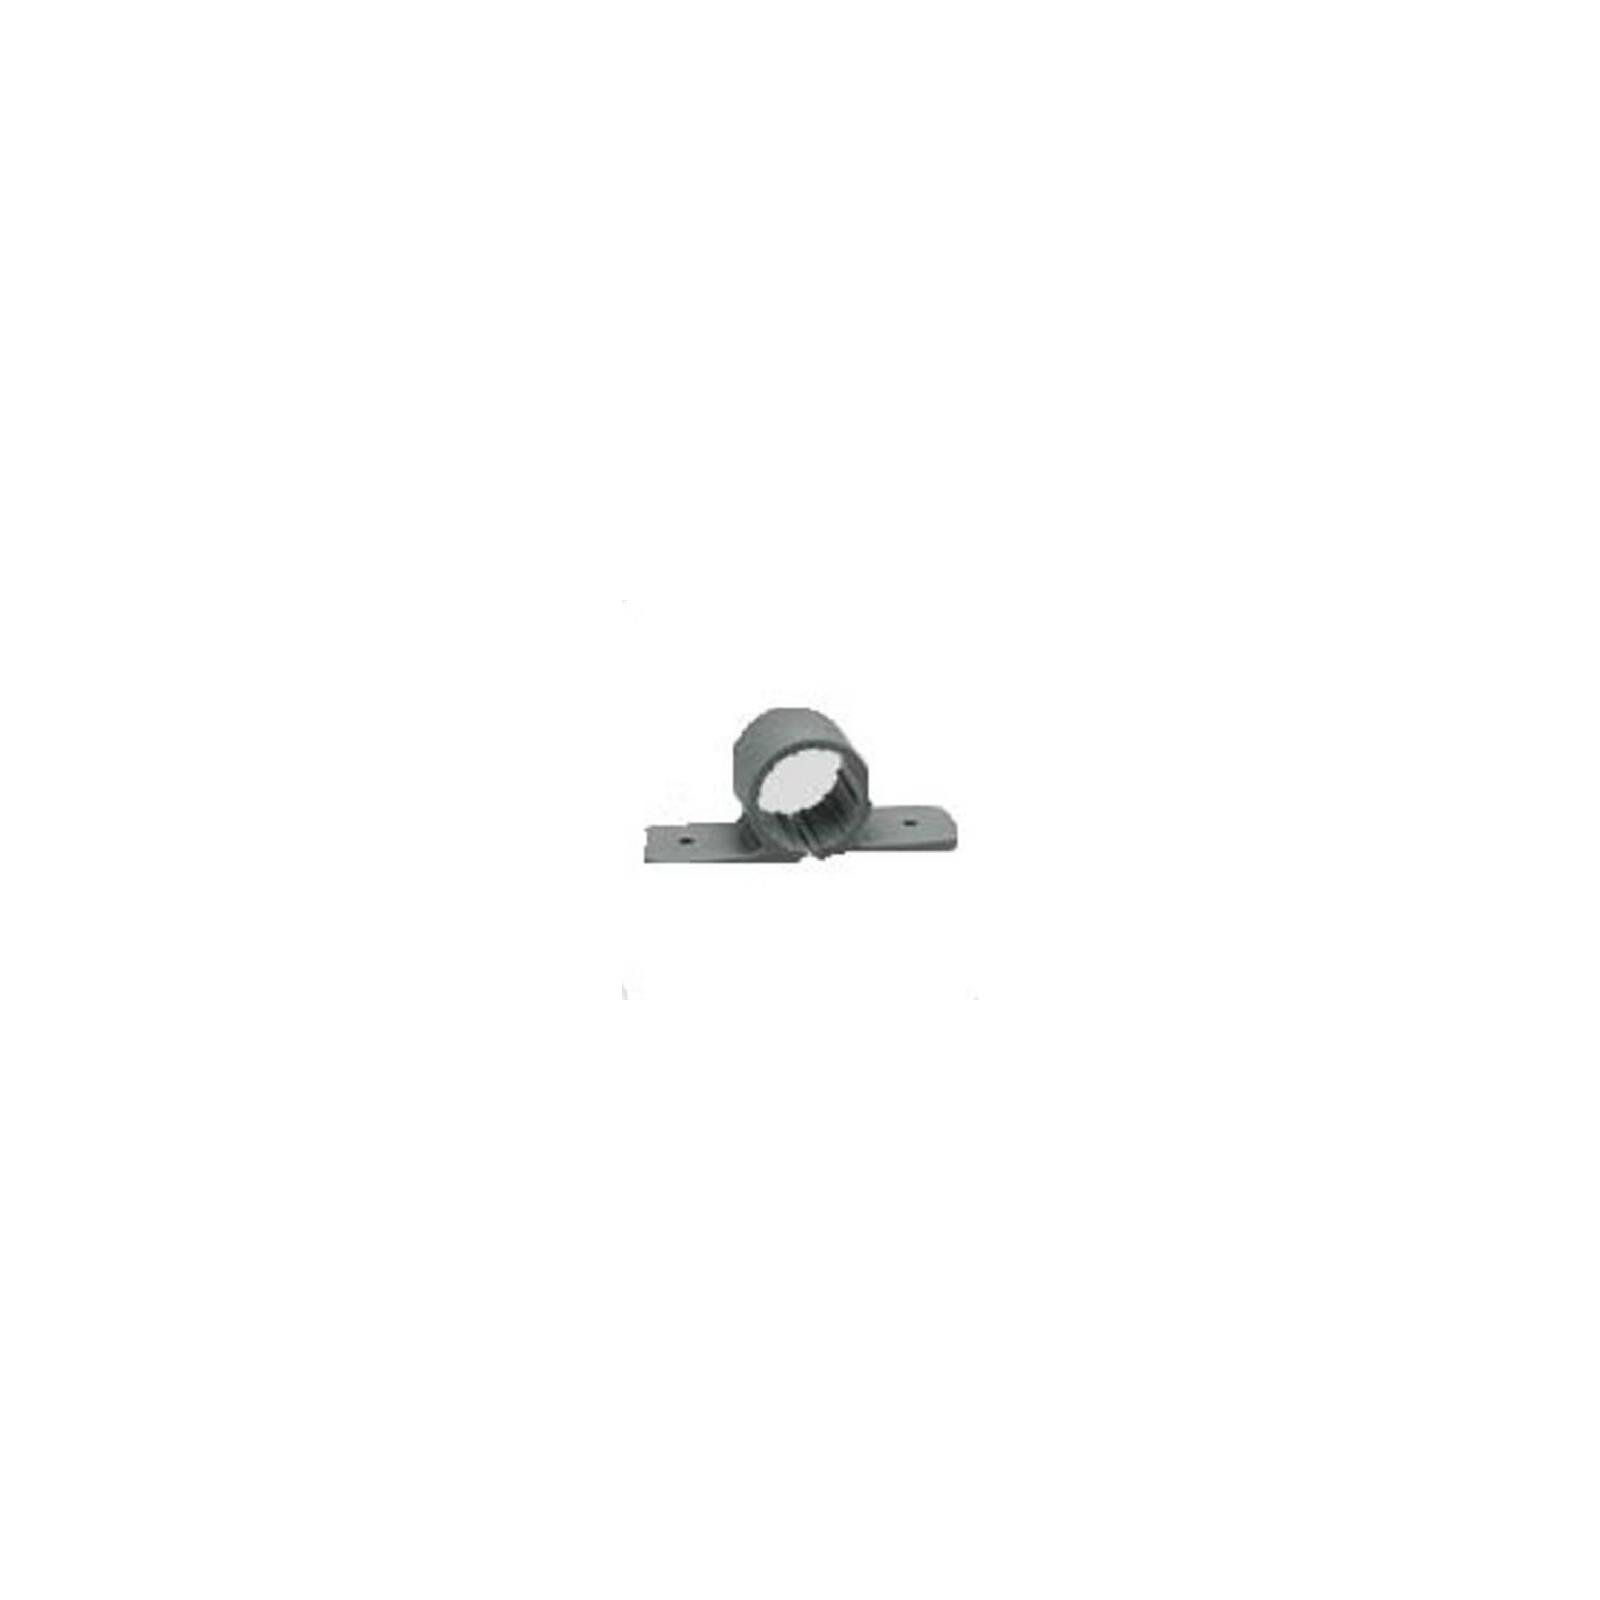 Oatey 33877 Standard Pipe Clamp (6 in Polybag), Gray, 1-Inch